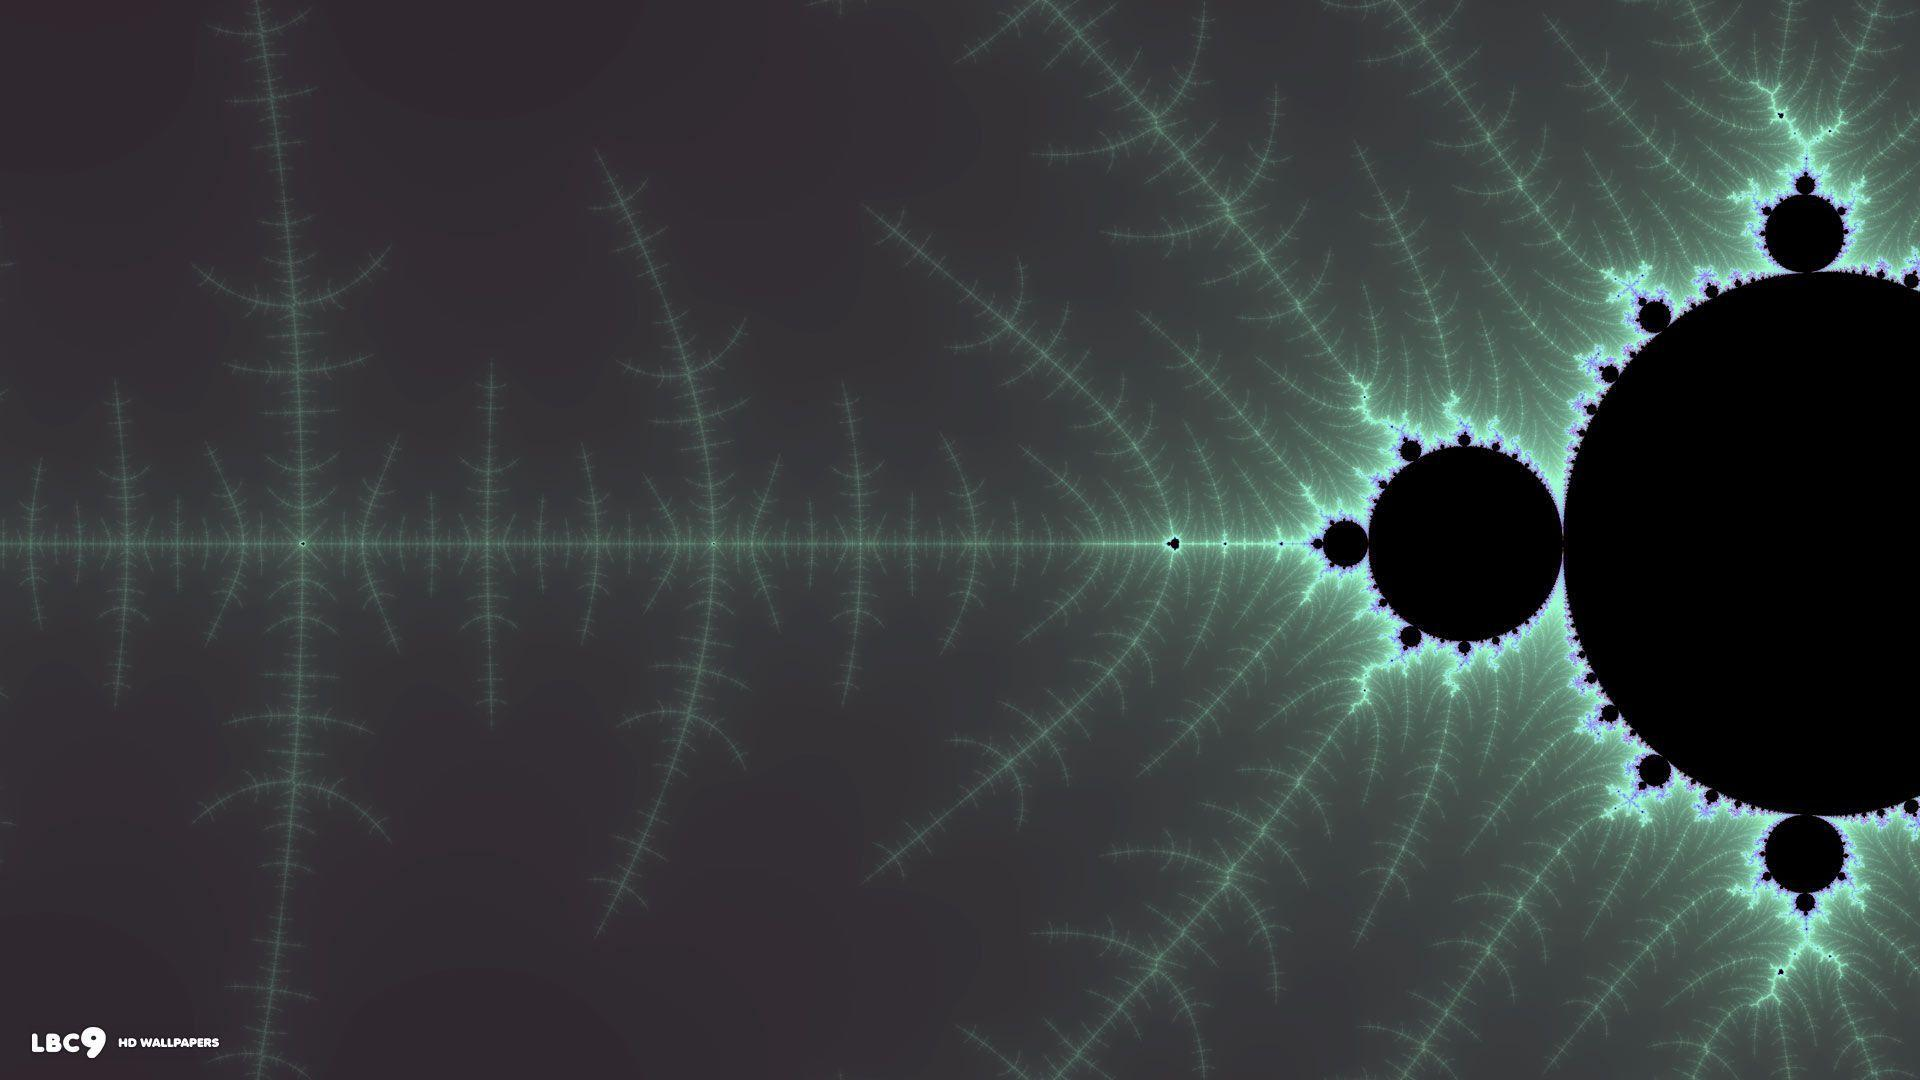 mandelbrot set wallpapers 10/28